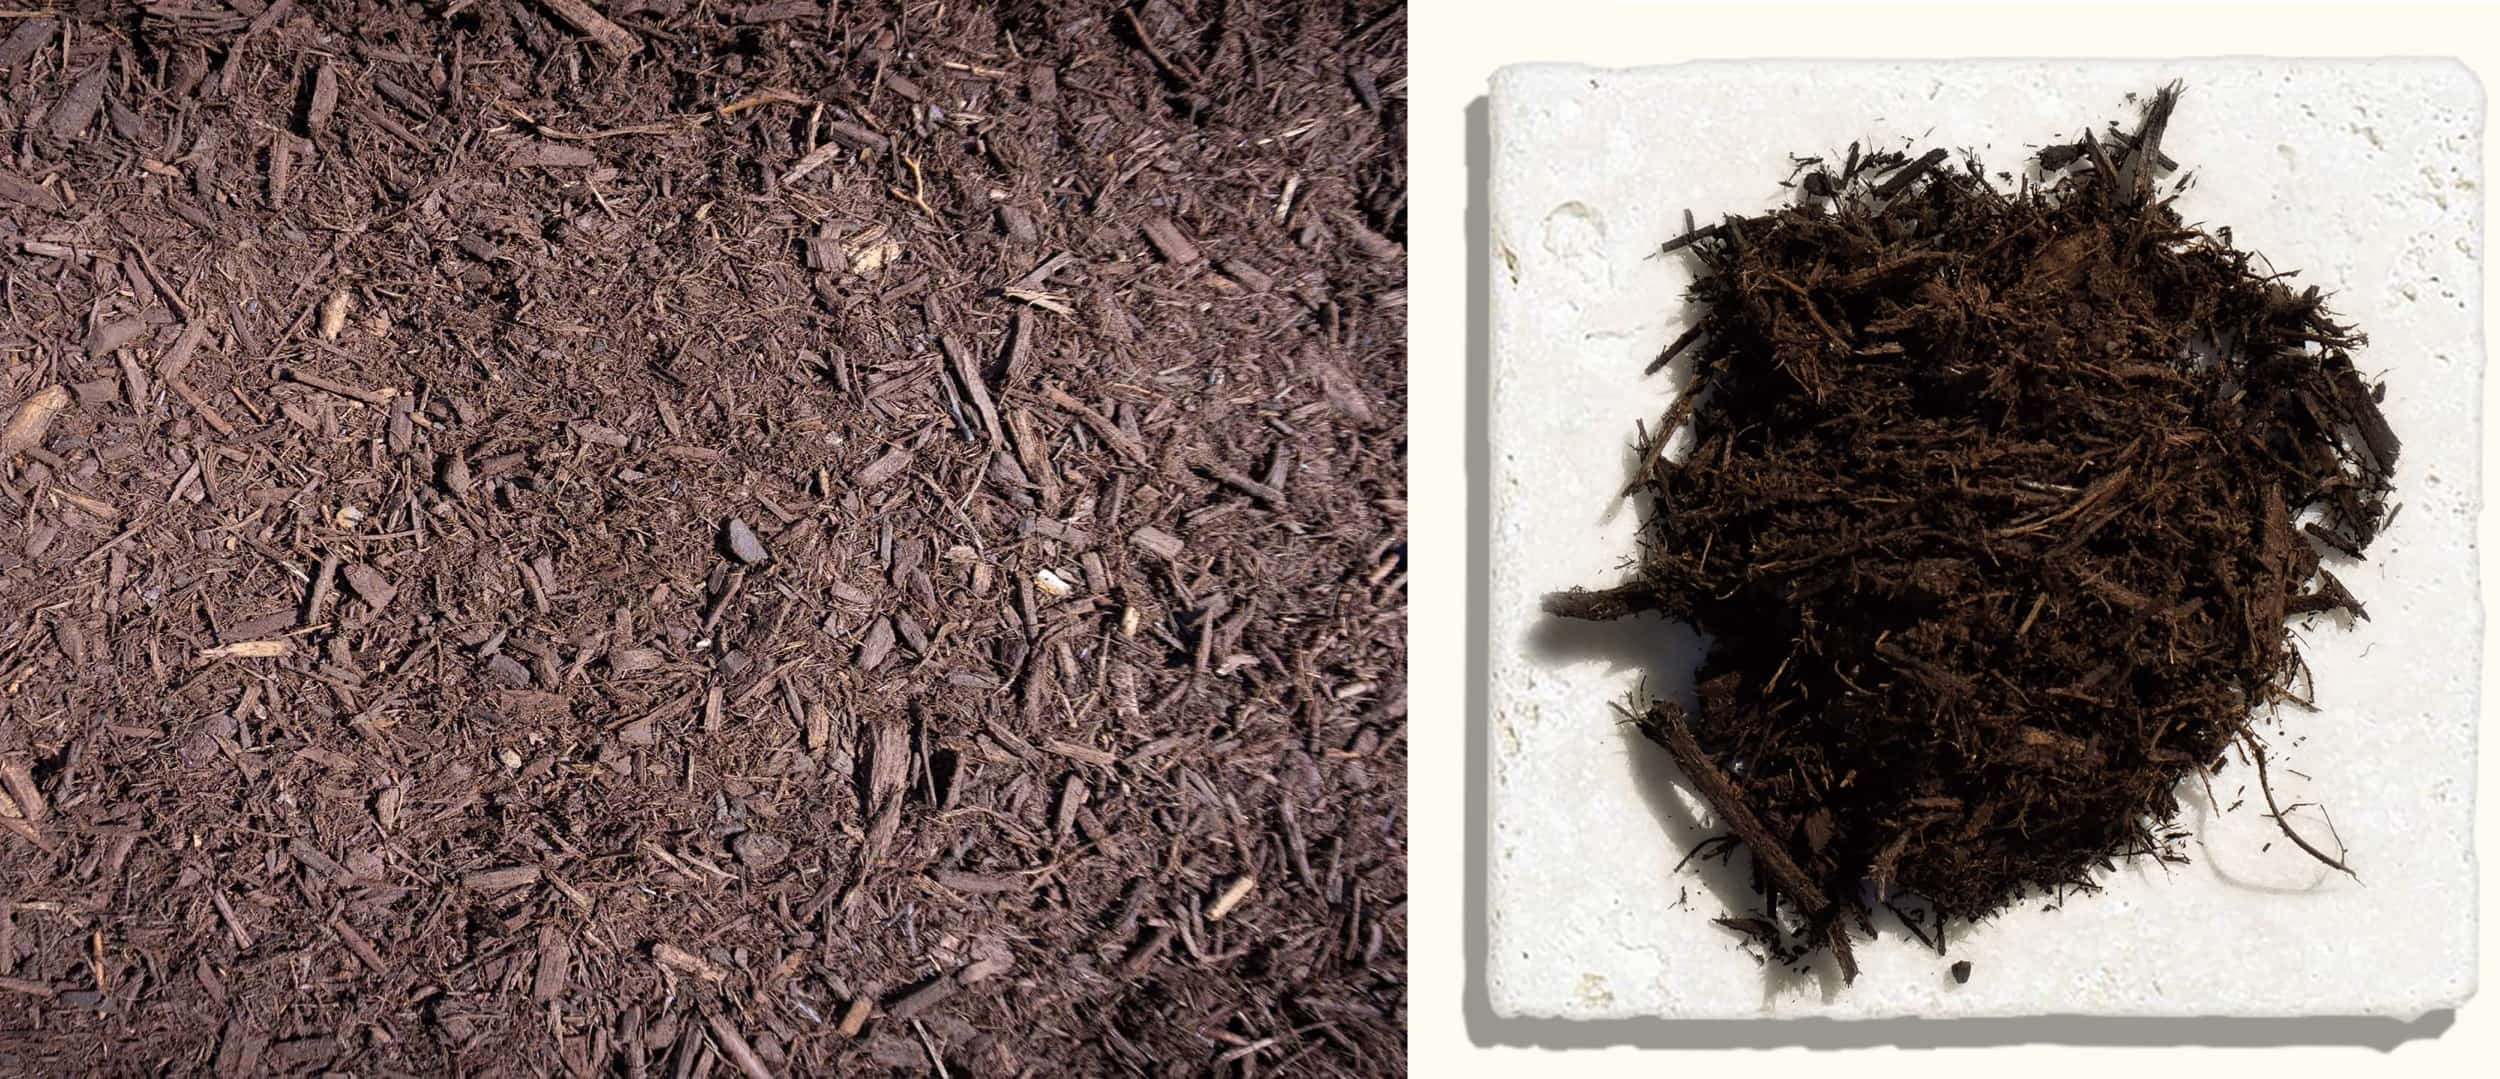 Chocolate Dyed Mulch $35.99 $37.99 $37.99 - We start out with our Double Ground Mulch and enhance it with an environmentally friendly colorant, which turns the mulch a dark brown color giving it a long lasting fresh look for 18-24 months.